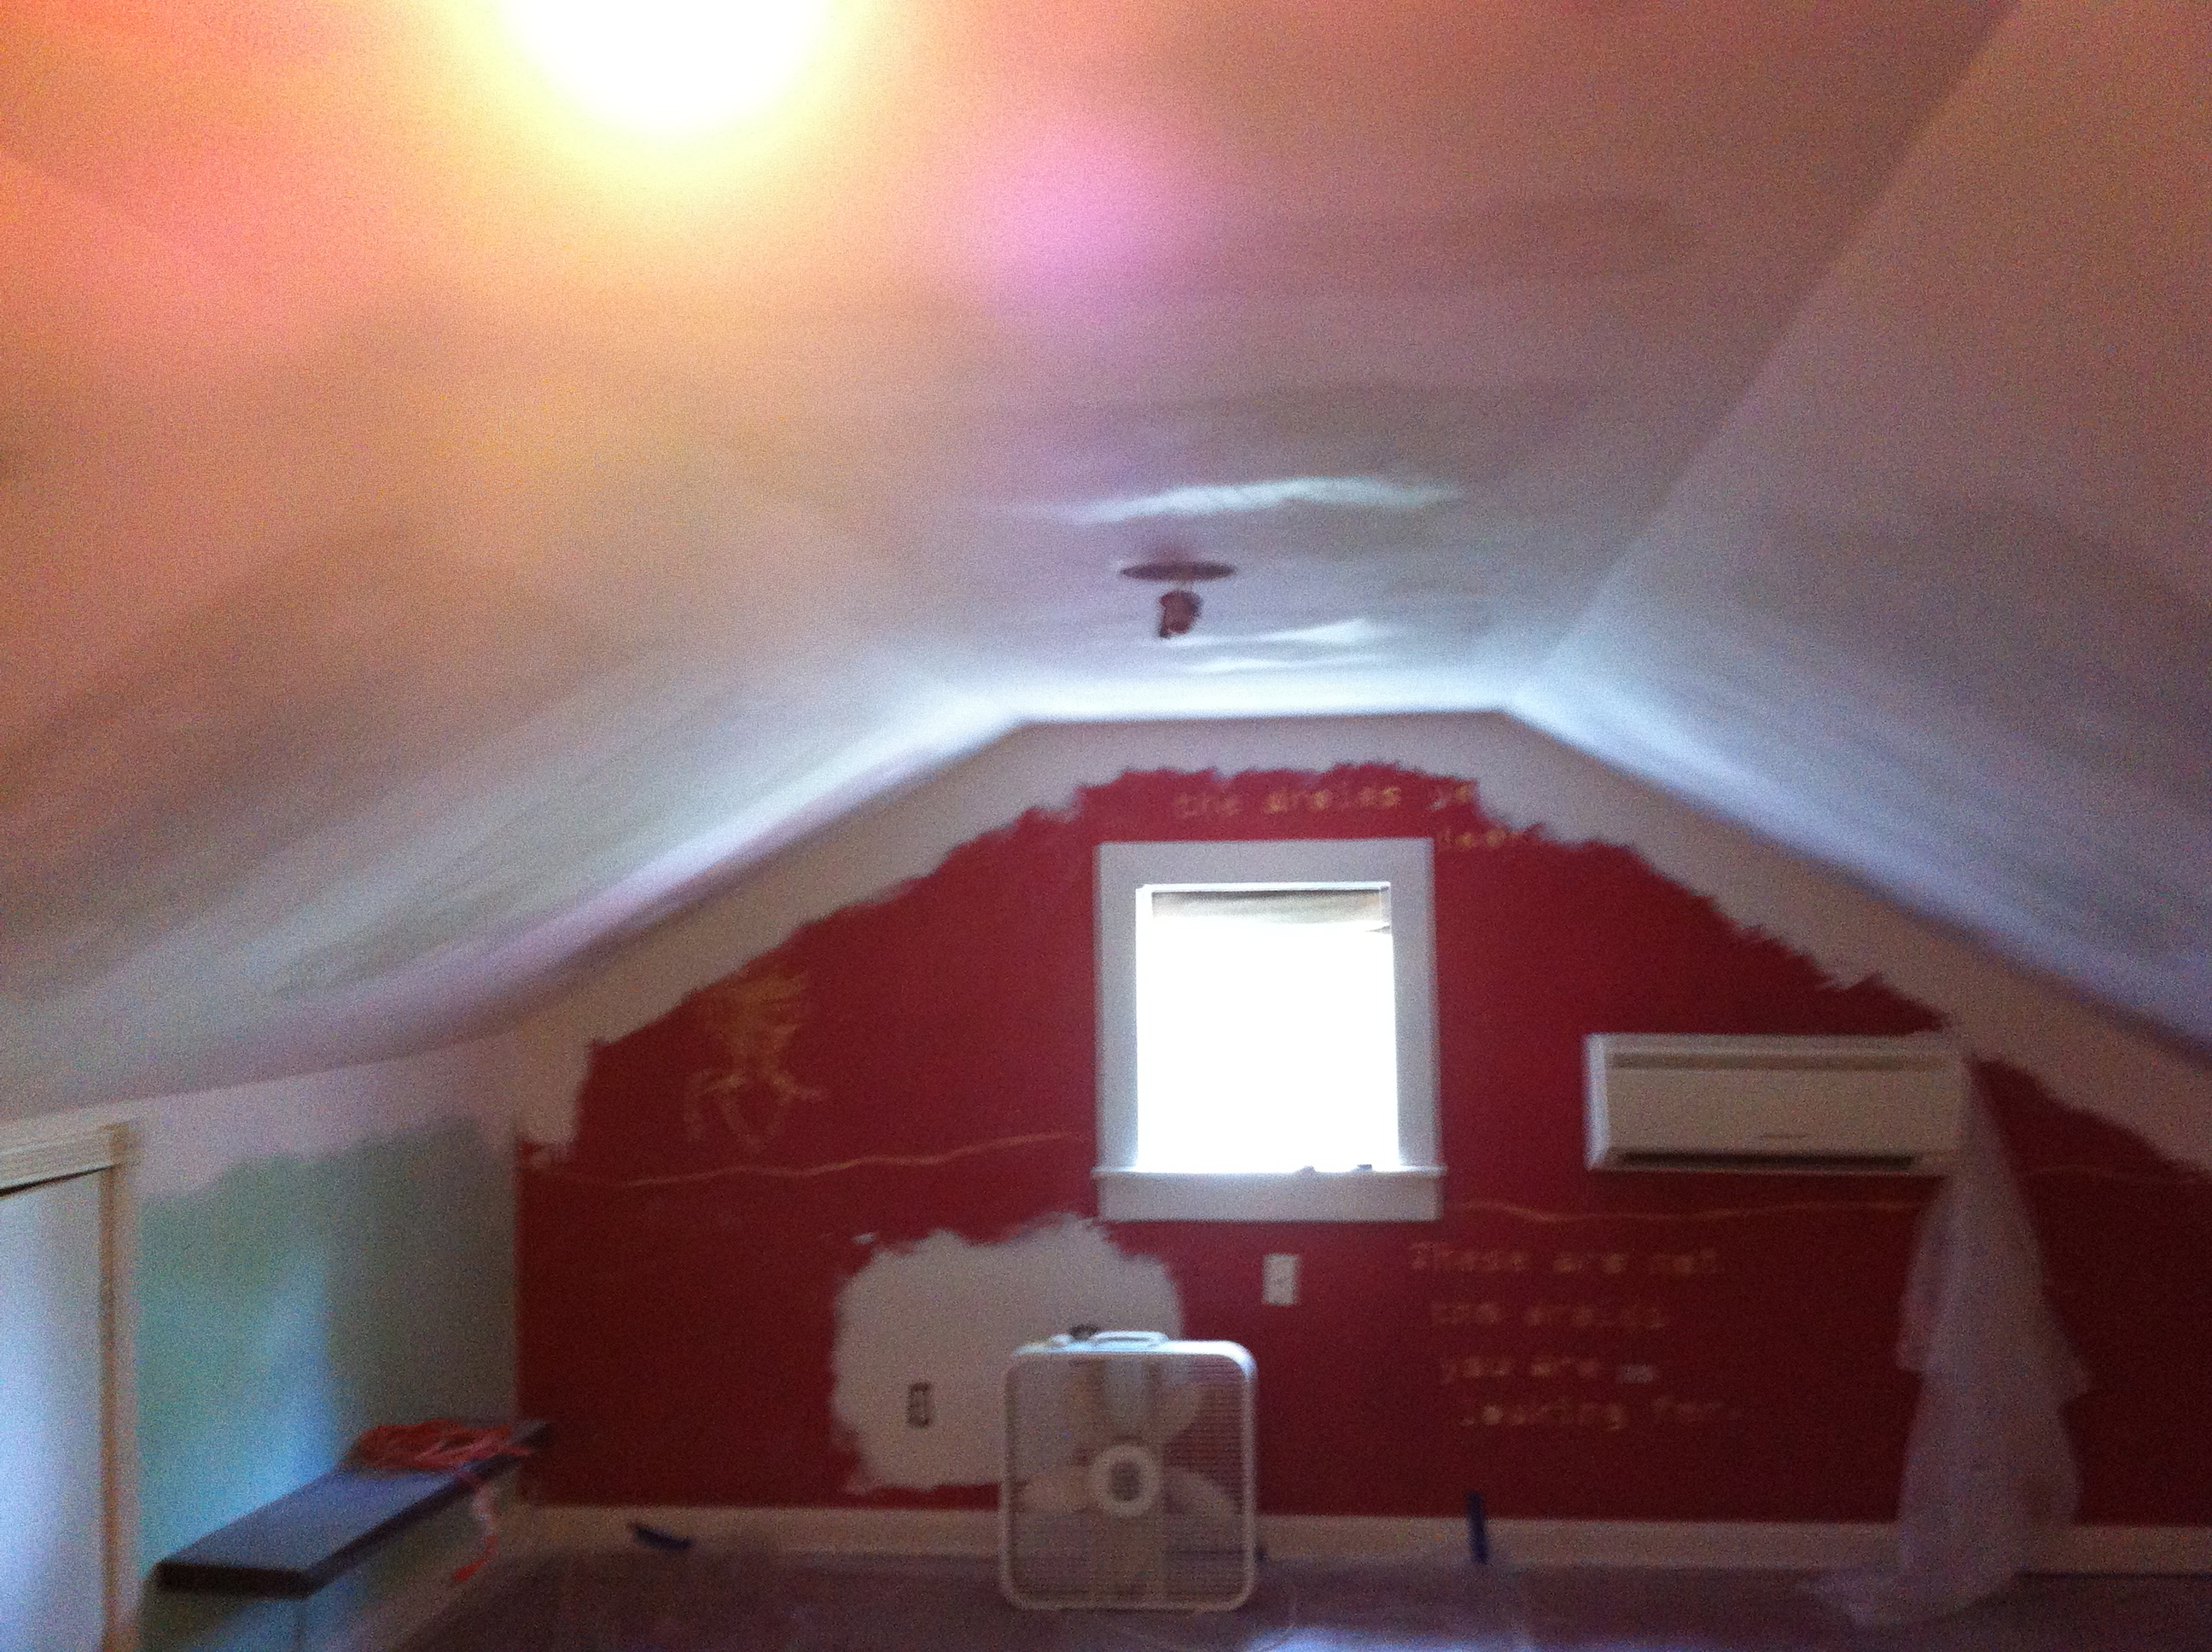 New sheetrock, final finish coat